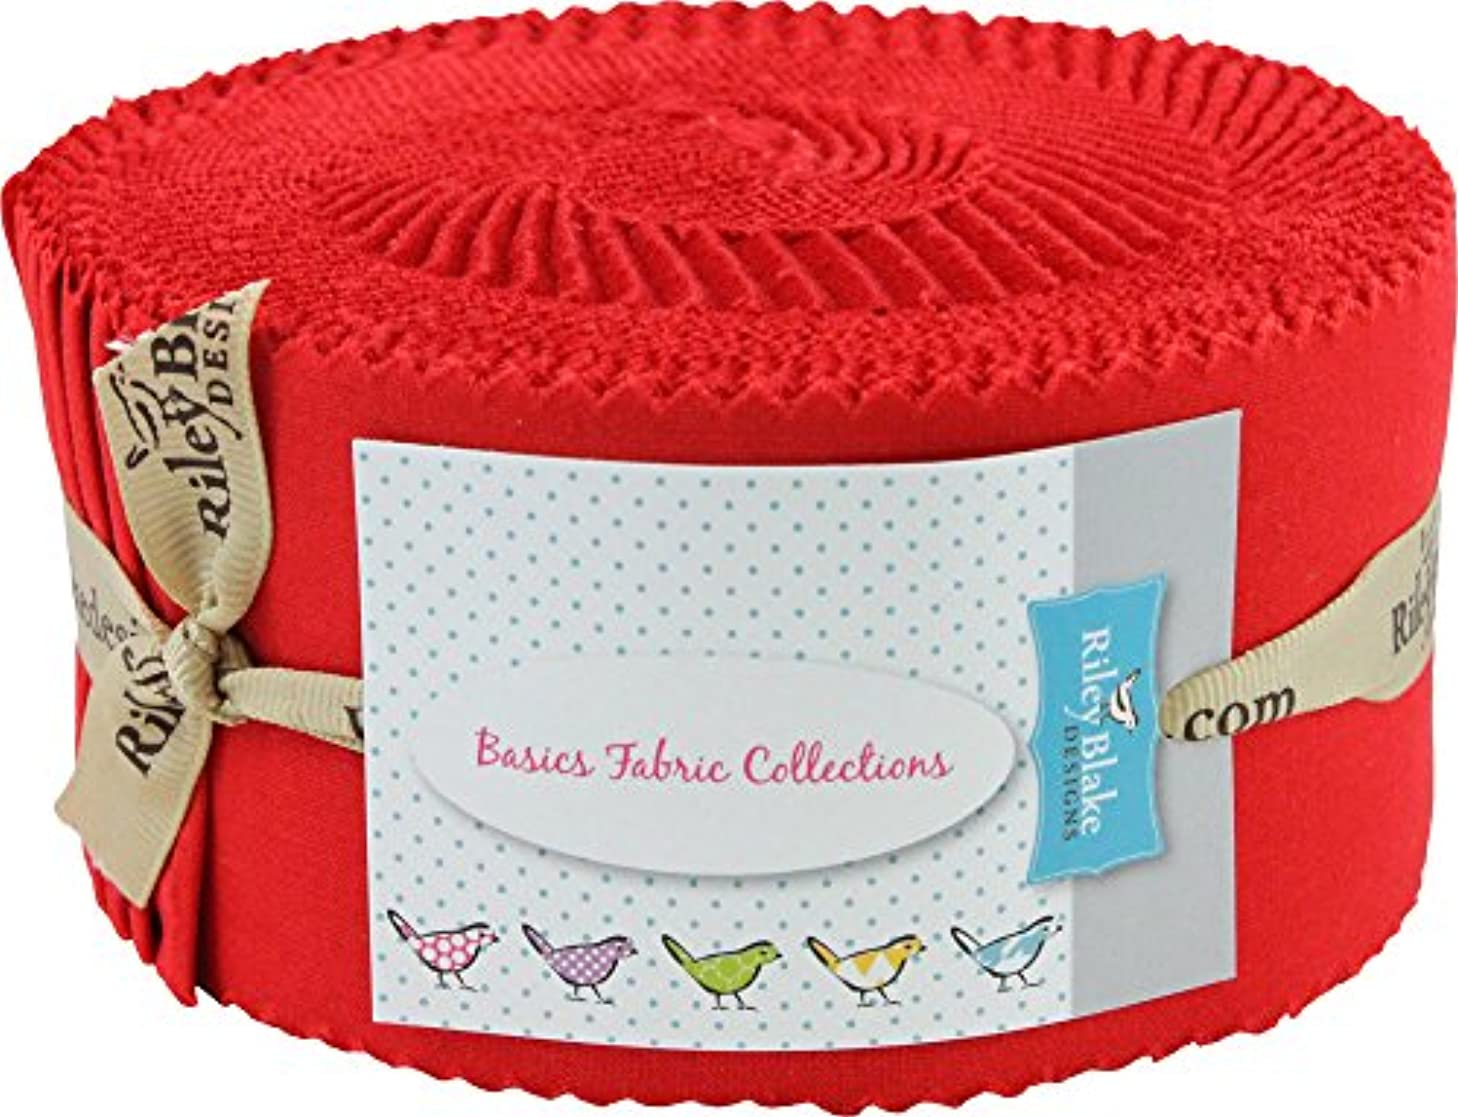 Confetti Cottons Tomato Rolie Polie 40 2.5-inch Strips Jelly Roll Riley Blake RP-120-TOMATO-40